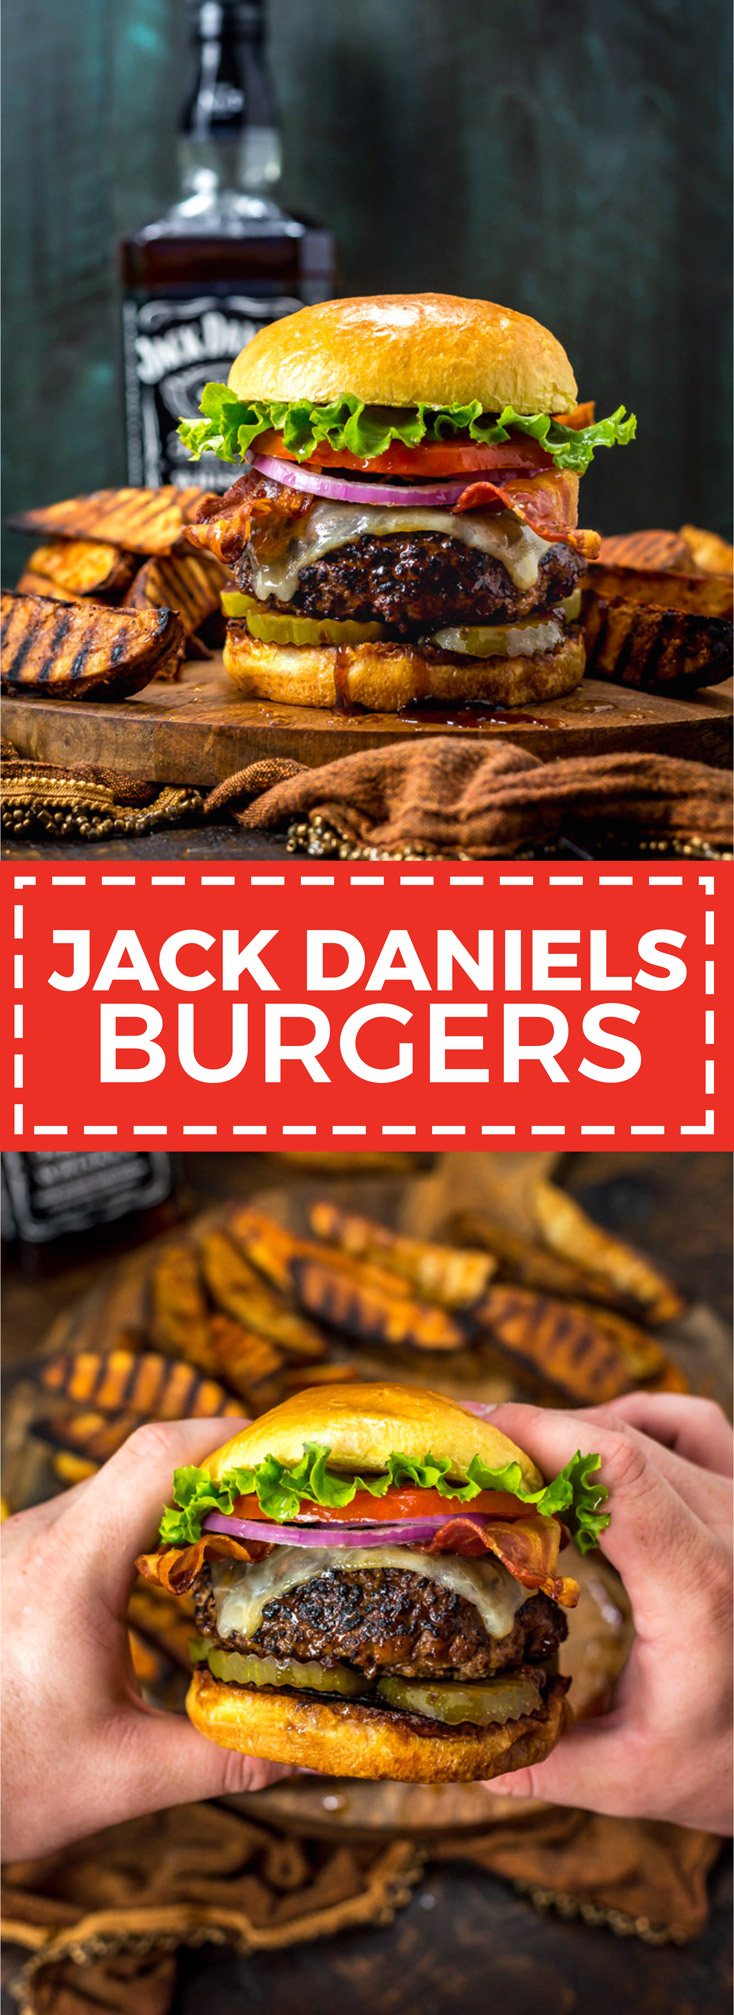 Jack Daniels Burgers. These juicy, glazed cheeseburgers taste just like the ones at TGI Friday's. The sweet, sticky glaze (and a few tips) will take your typical backyard burgers to the next level. | hostthetoast.com